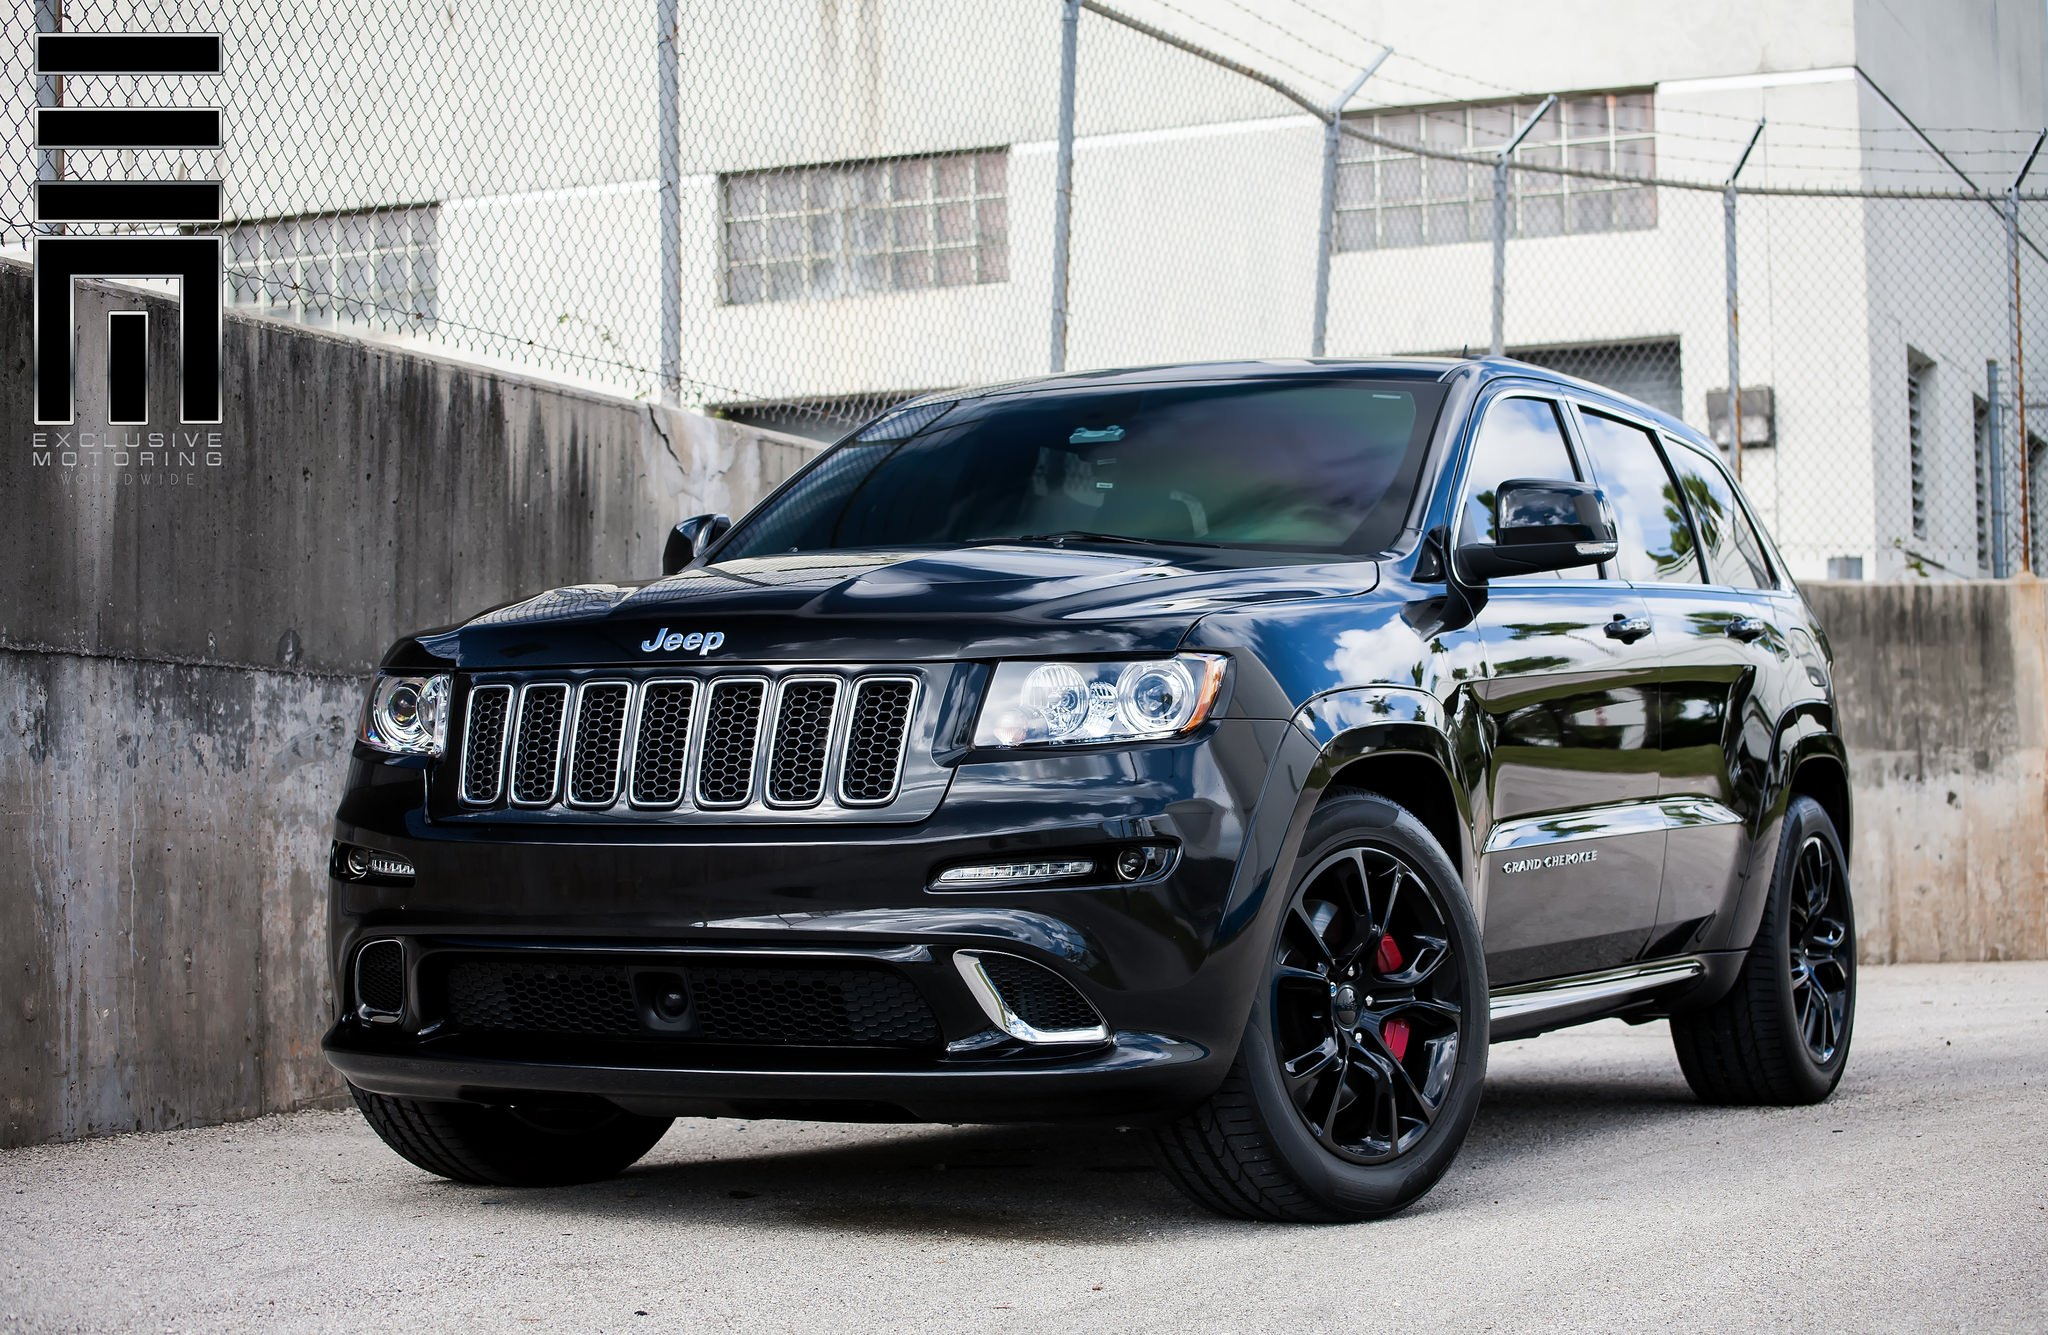 srt 8 grand cherokee by exclusive motoring gallery. Black Bedroom Furniture Sets. Home Design Ideas